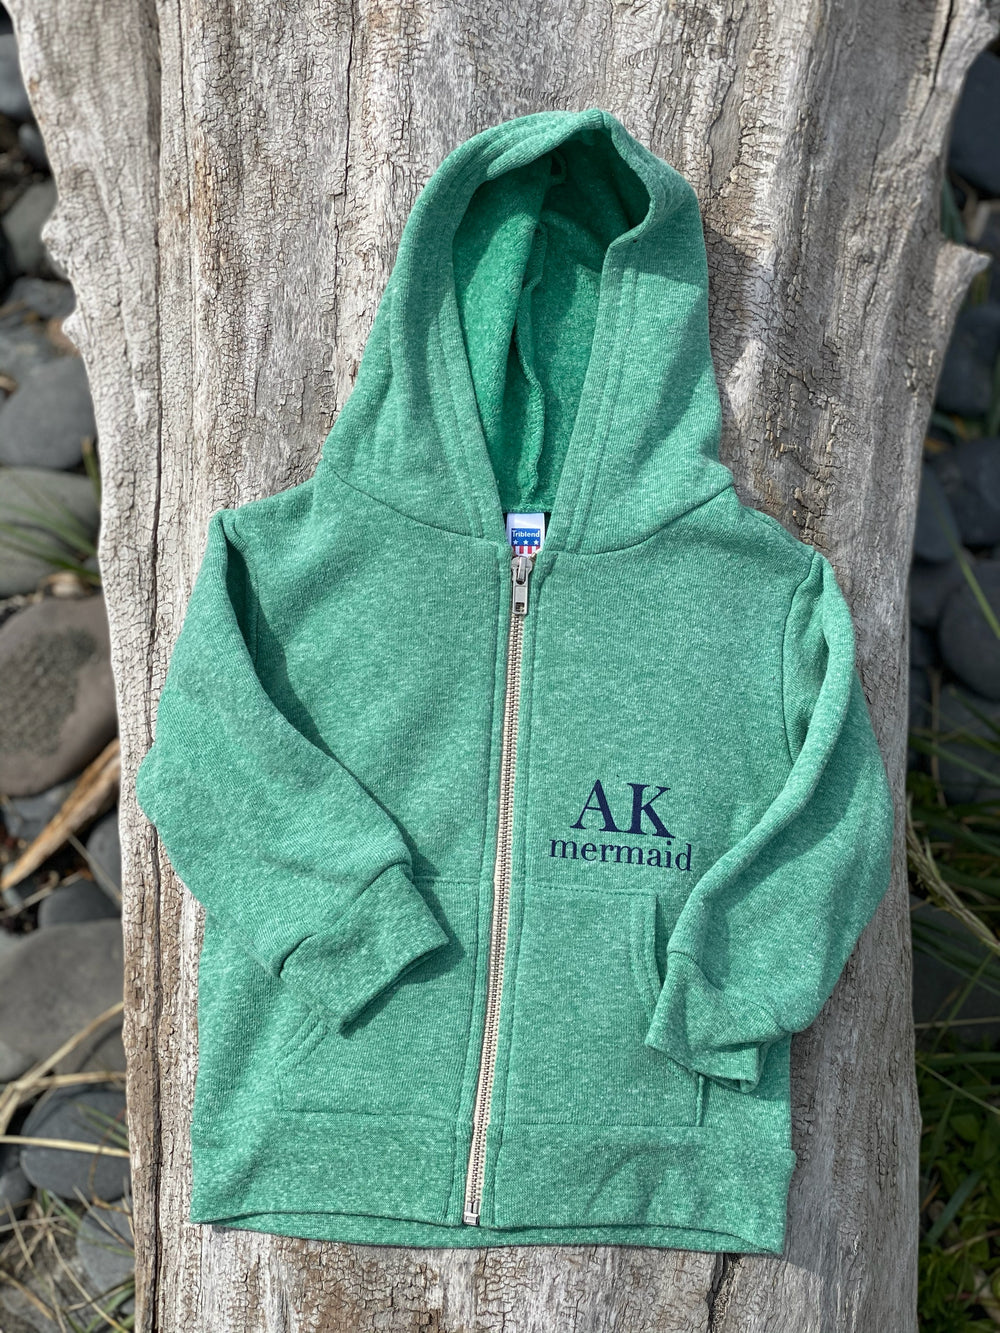 Beach Grass AK Mermaid Children's Triblend Zipped Hoody